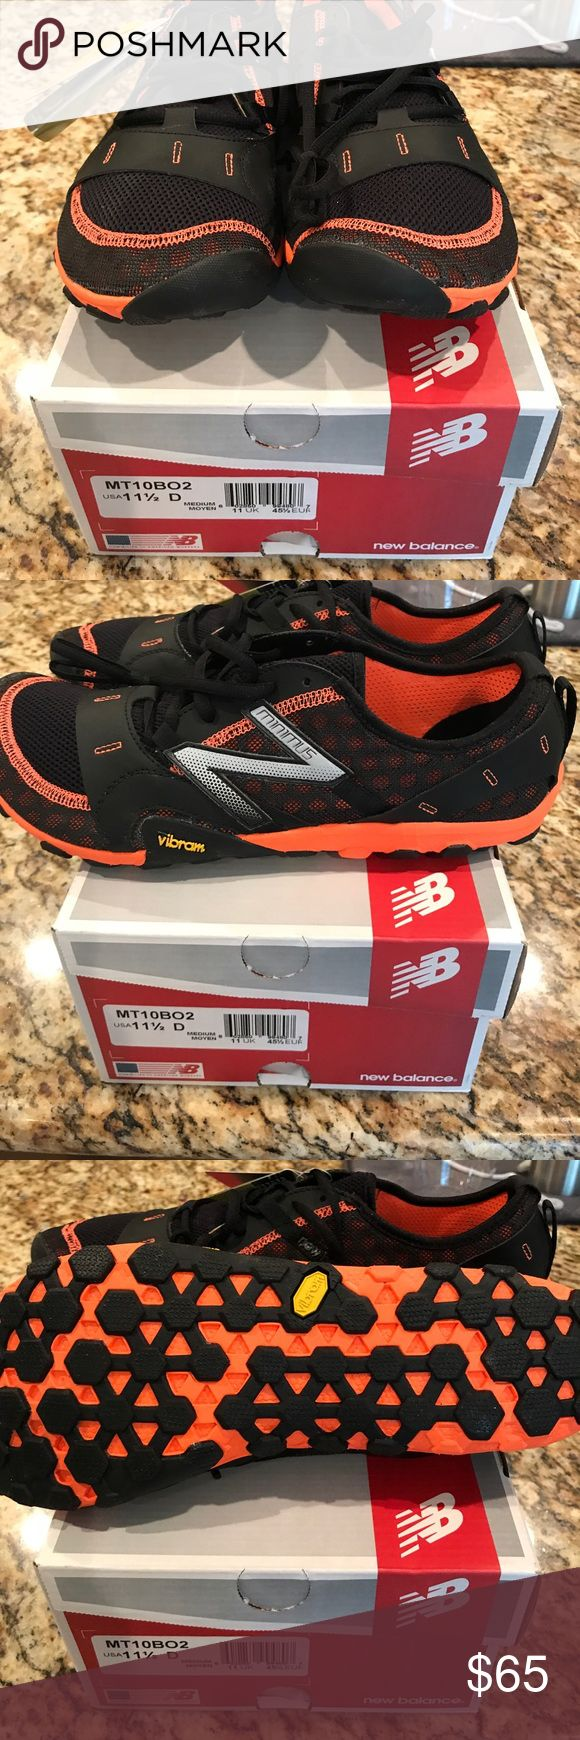 NIB Men's New Balance Minimus Sz 11.5 US No flaws. Night for boyfriend and too small. Past the return window so selling. New Balance Shoes Sneakers